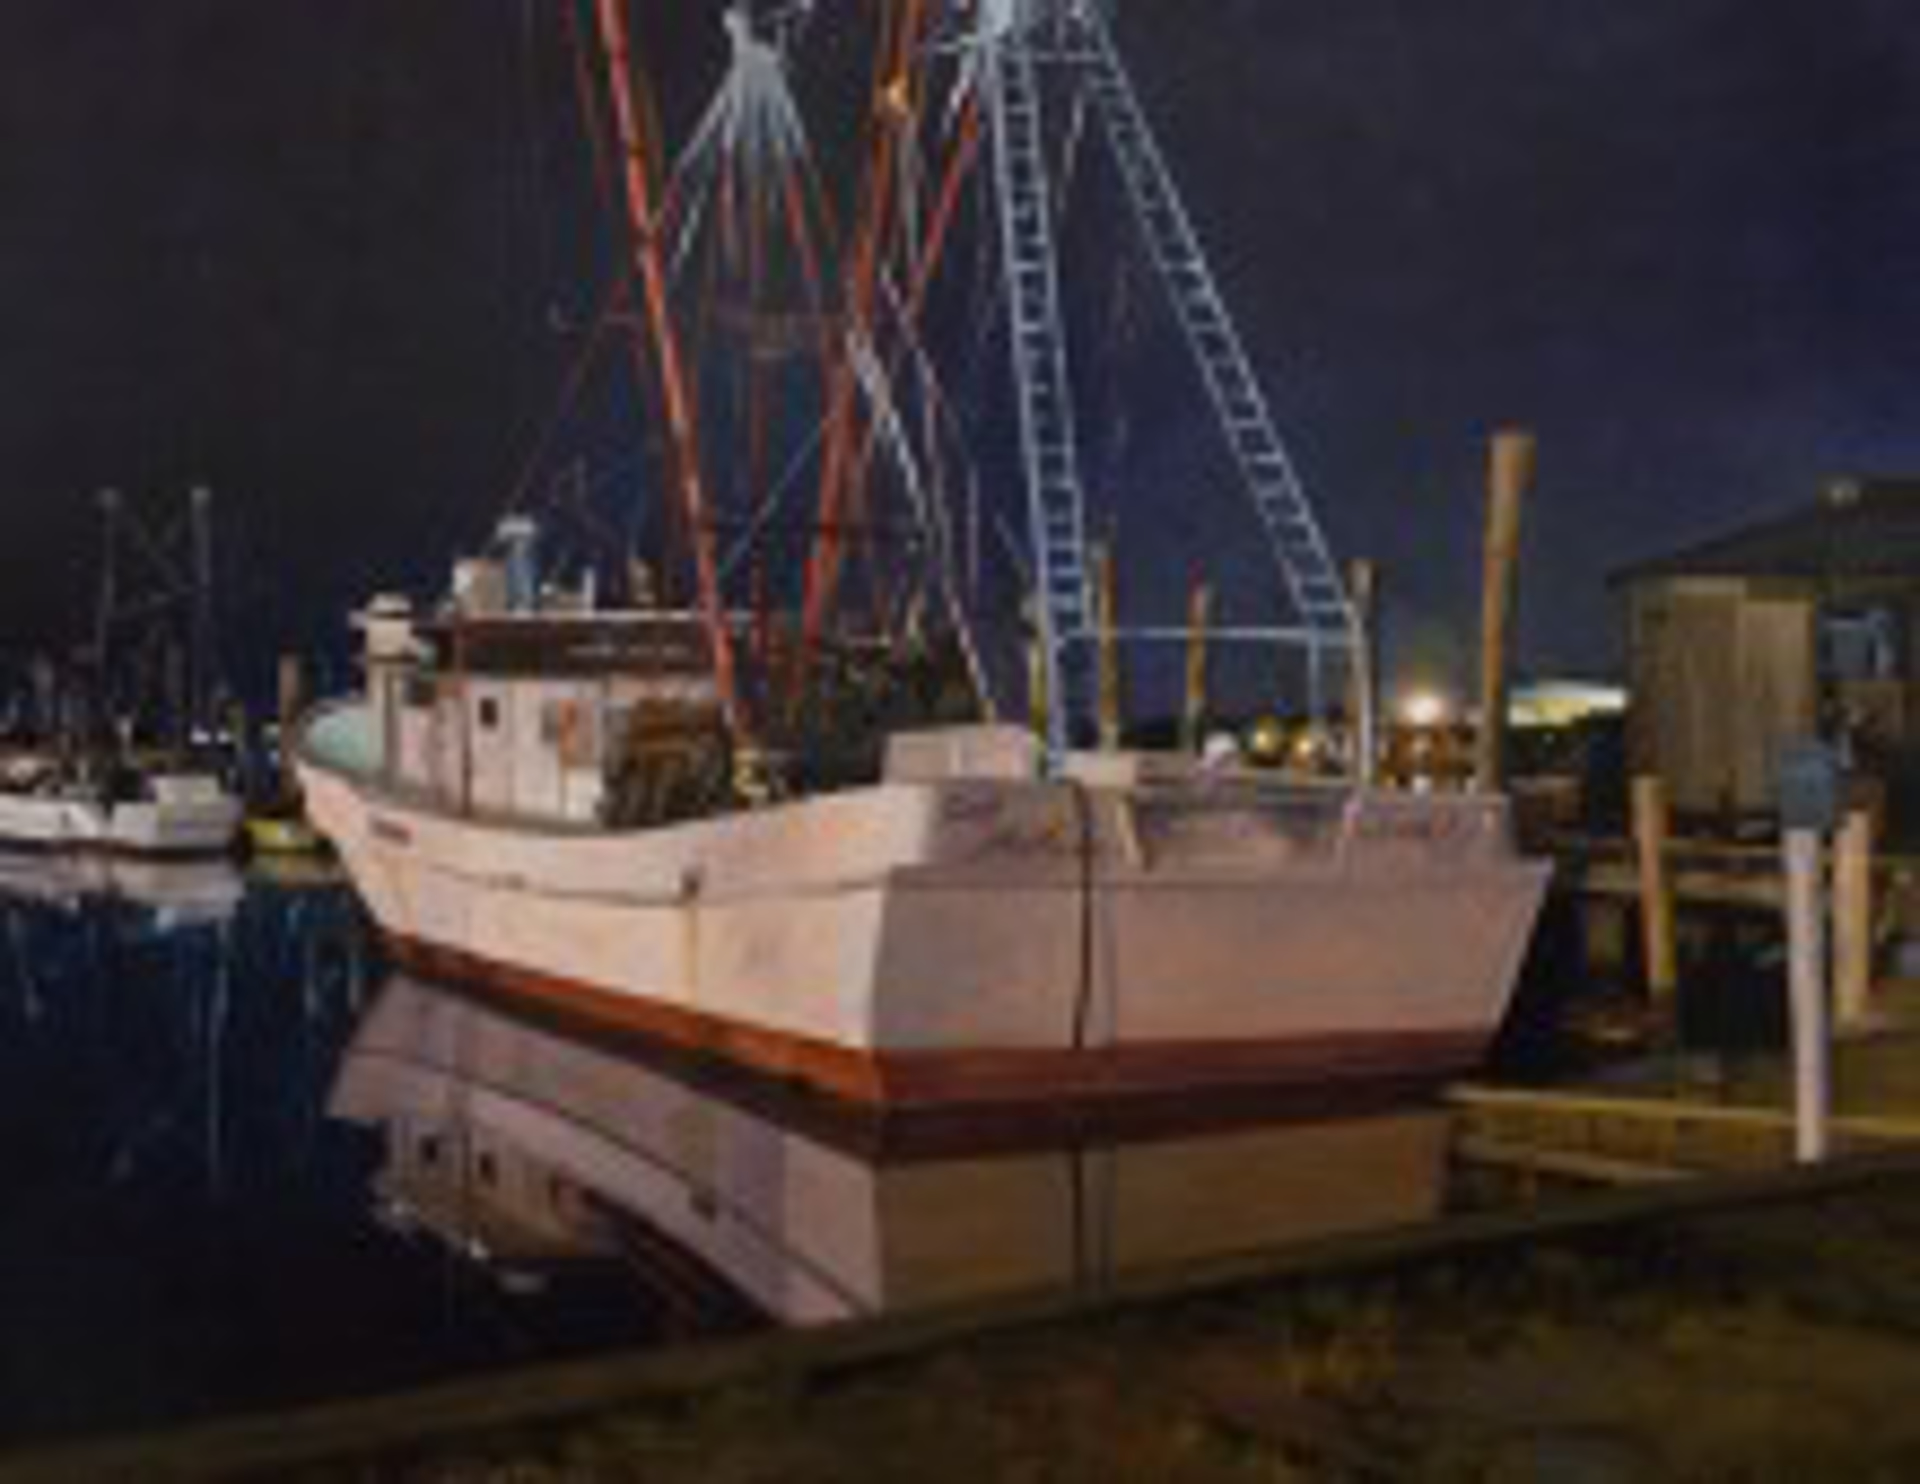 Docked After Dark (Clyde Phillips, Swansboro) by Steven S. Walker